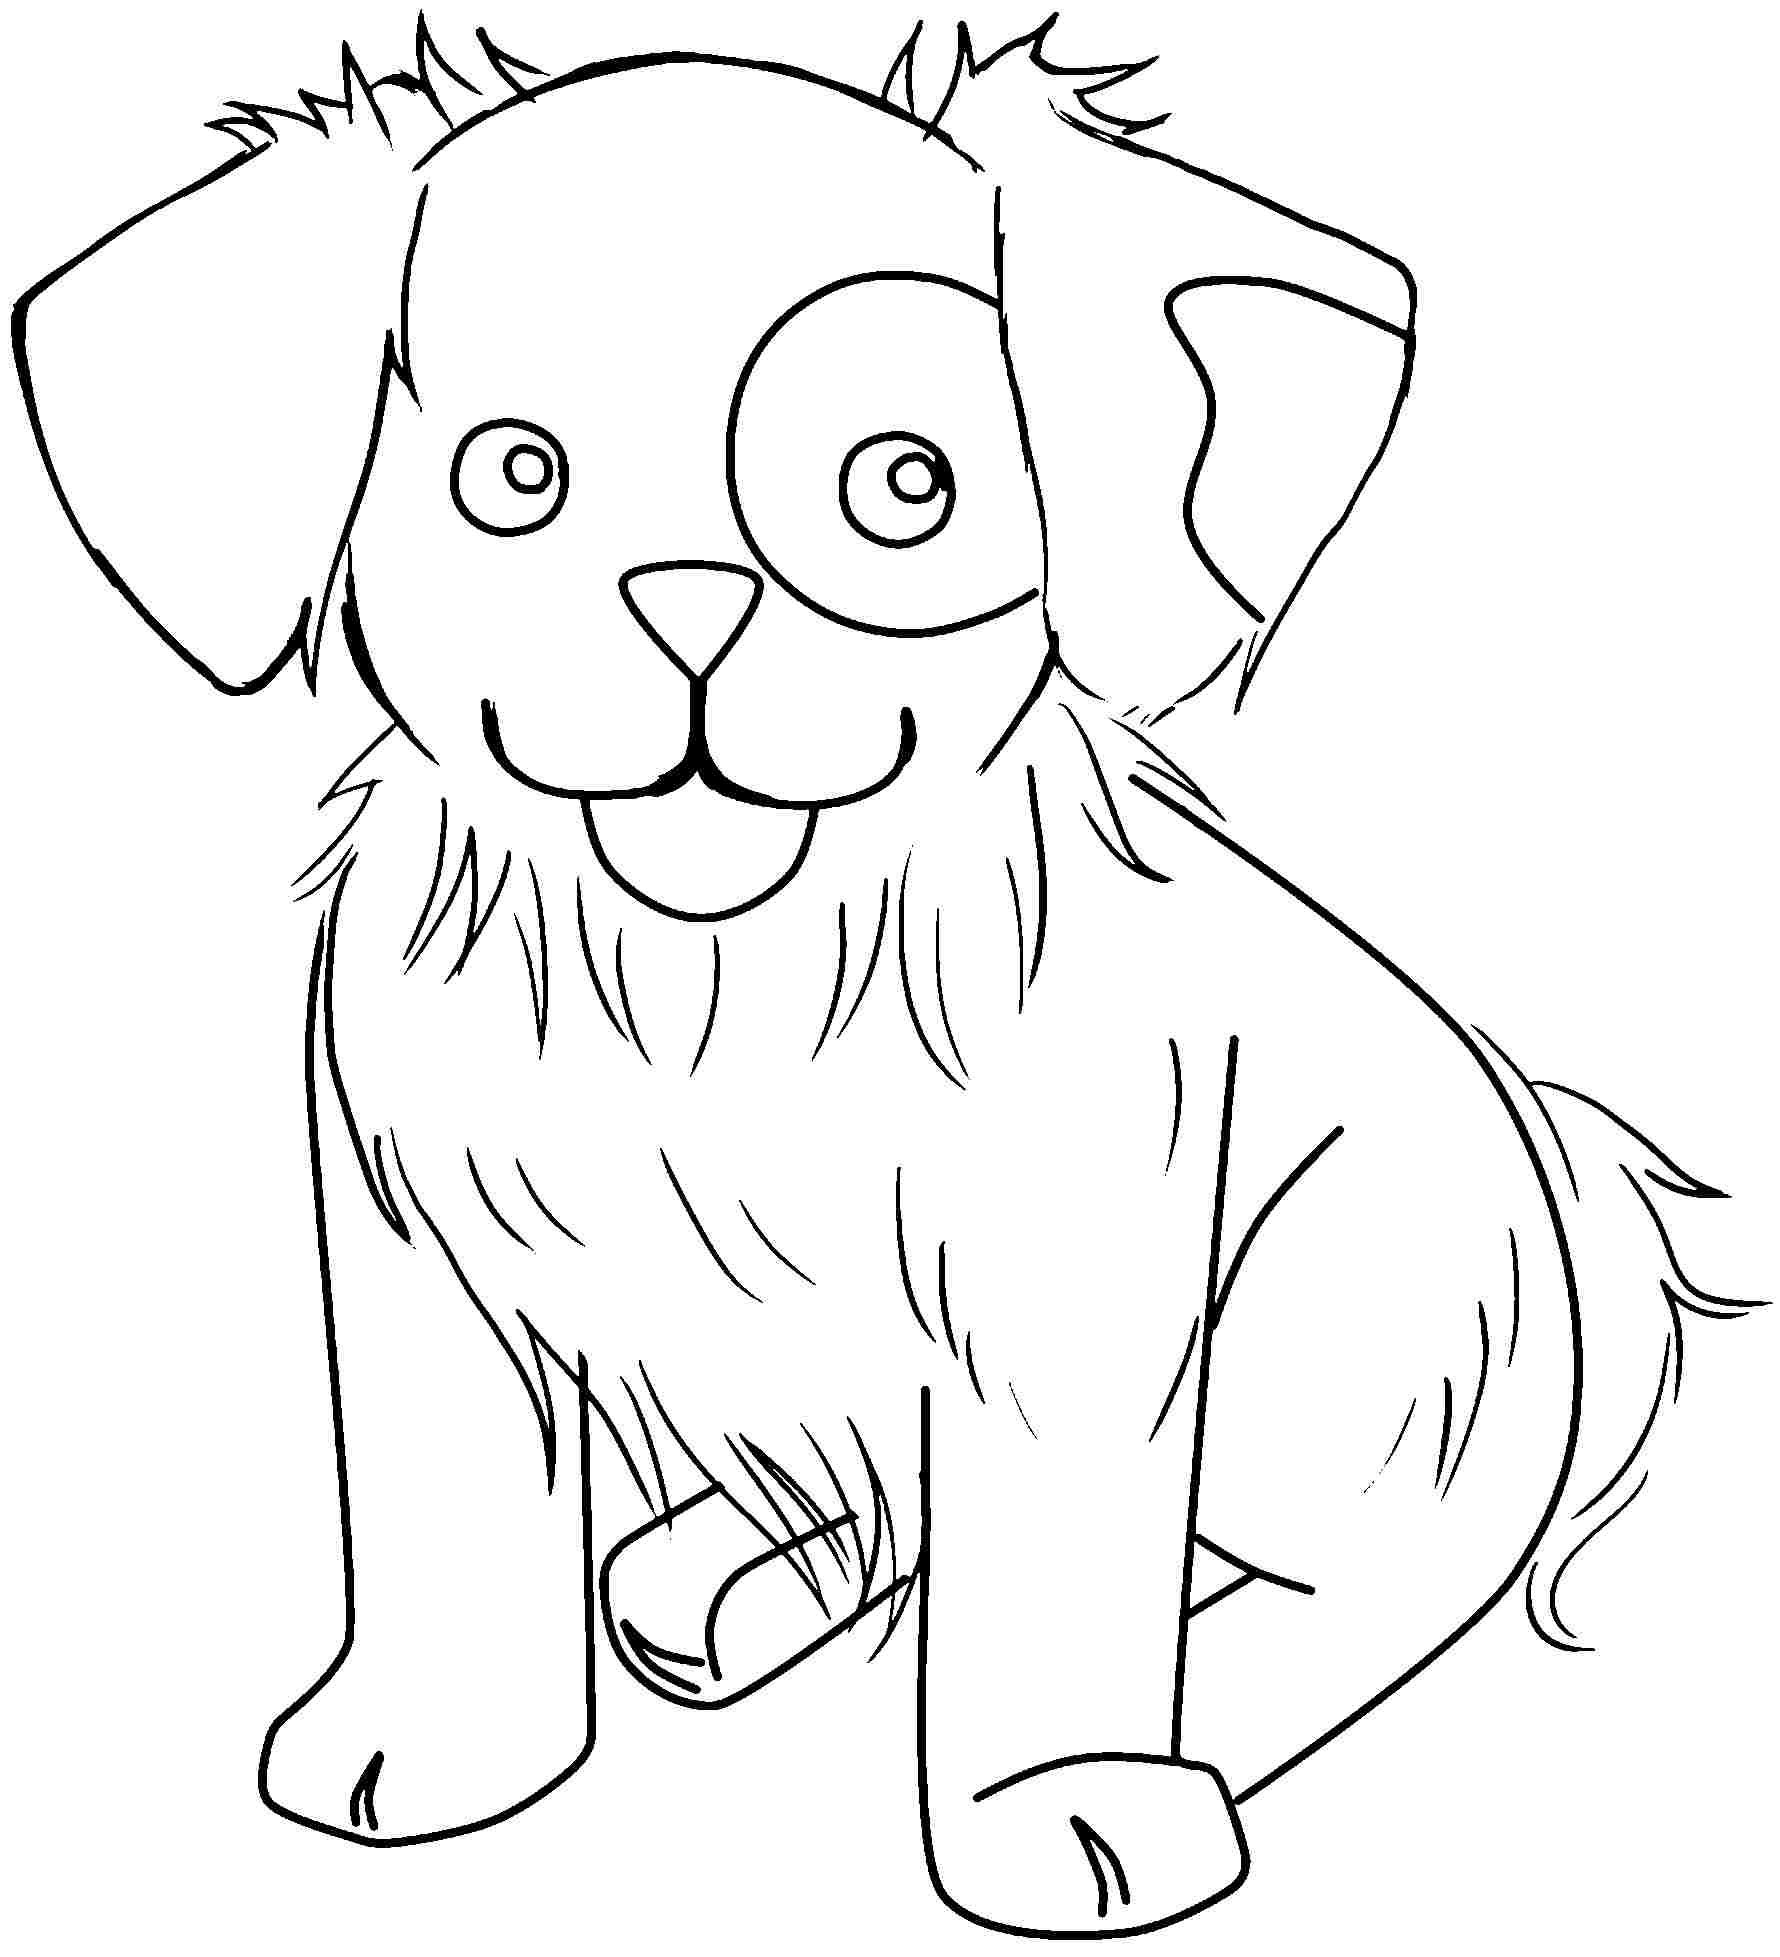 Printable coloring pages with animals - Printable Dog Coloring Pages Gif Cute Dogs Coloring Coloring